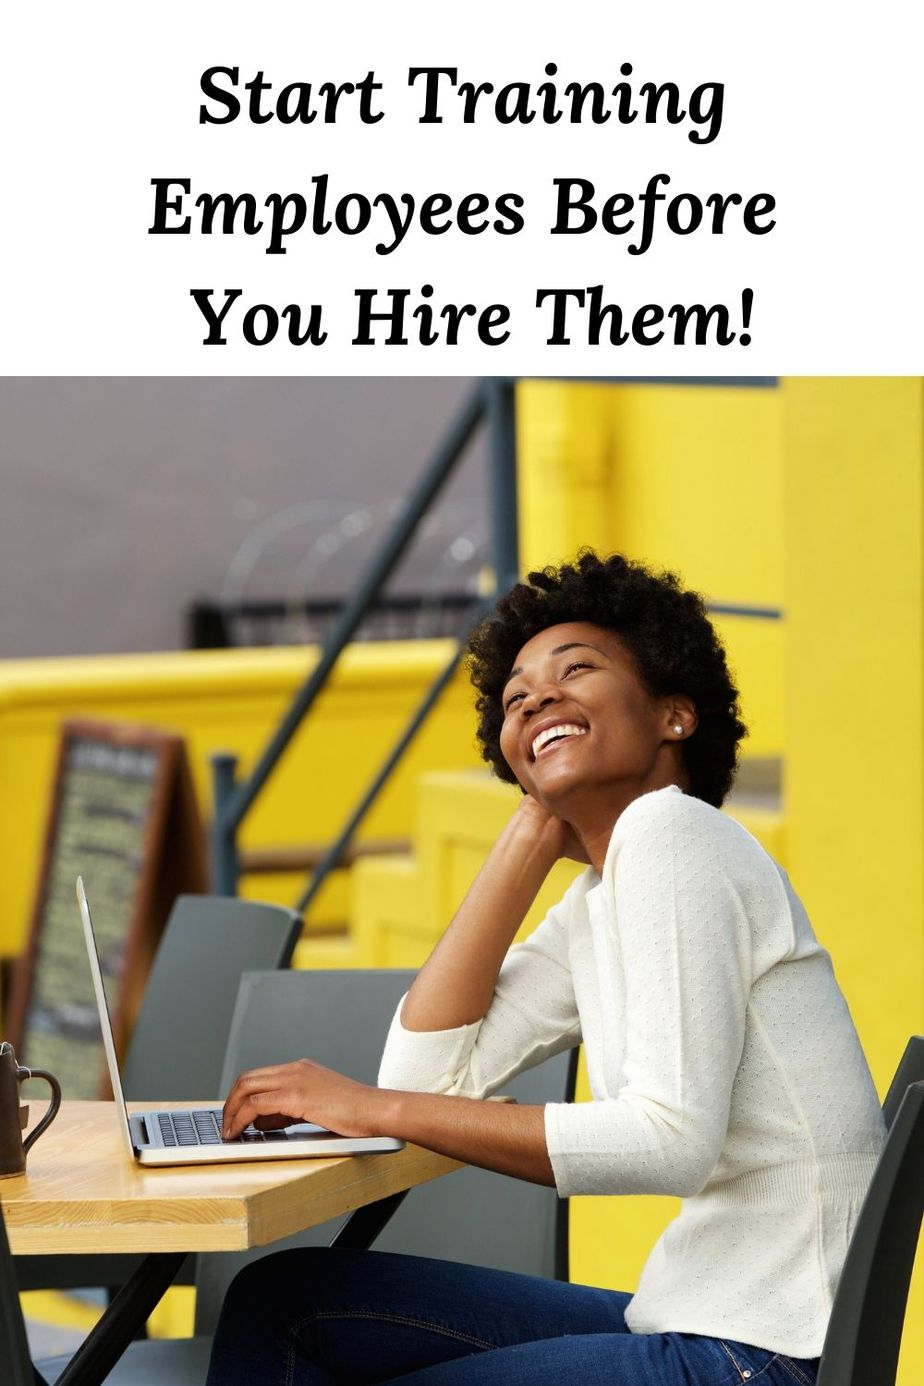 Train your 3employees before you hire them